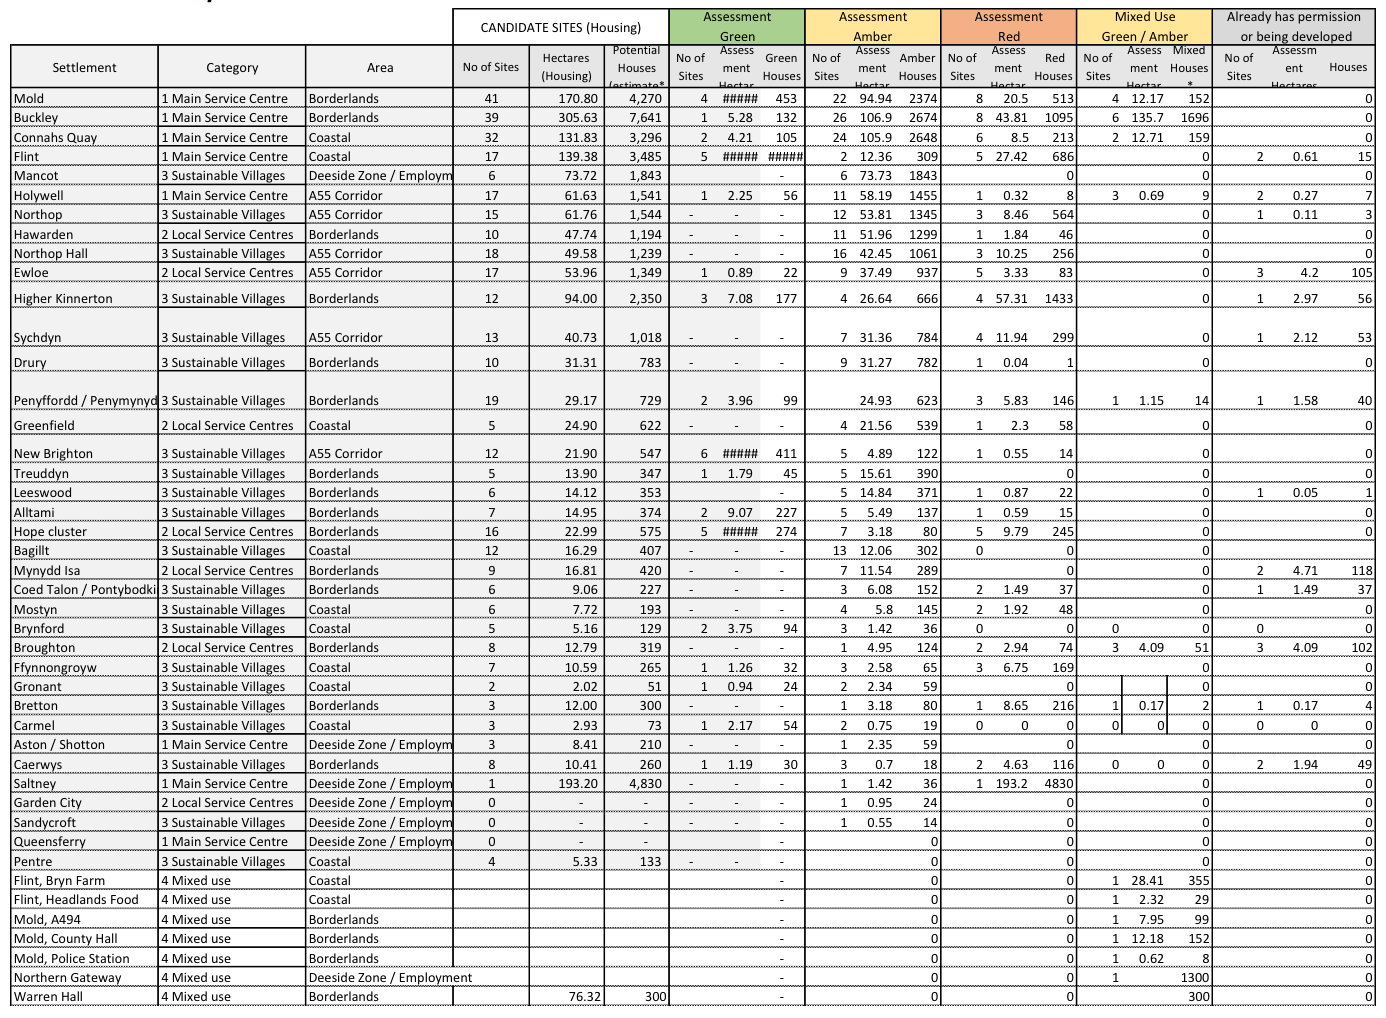 LDP-Table-3.png